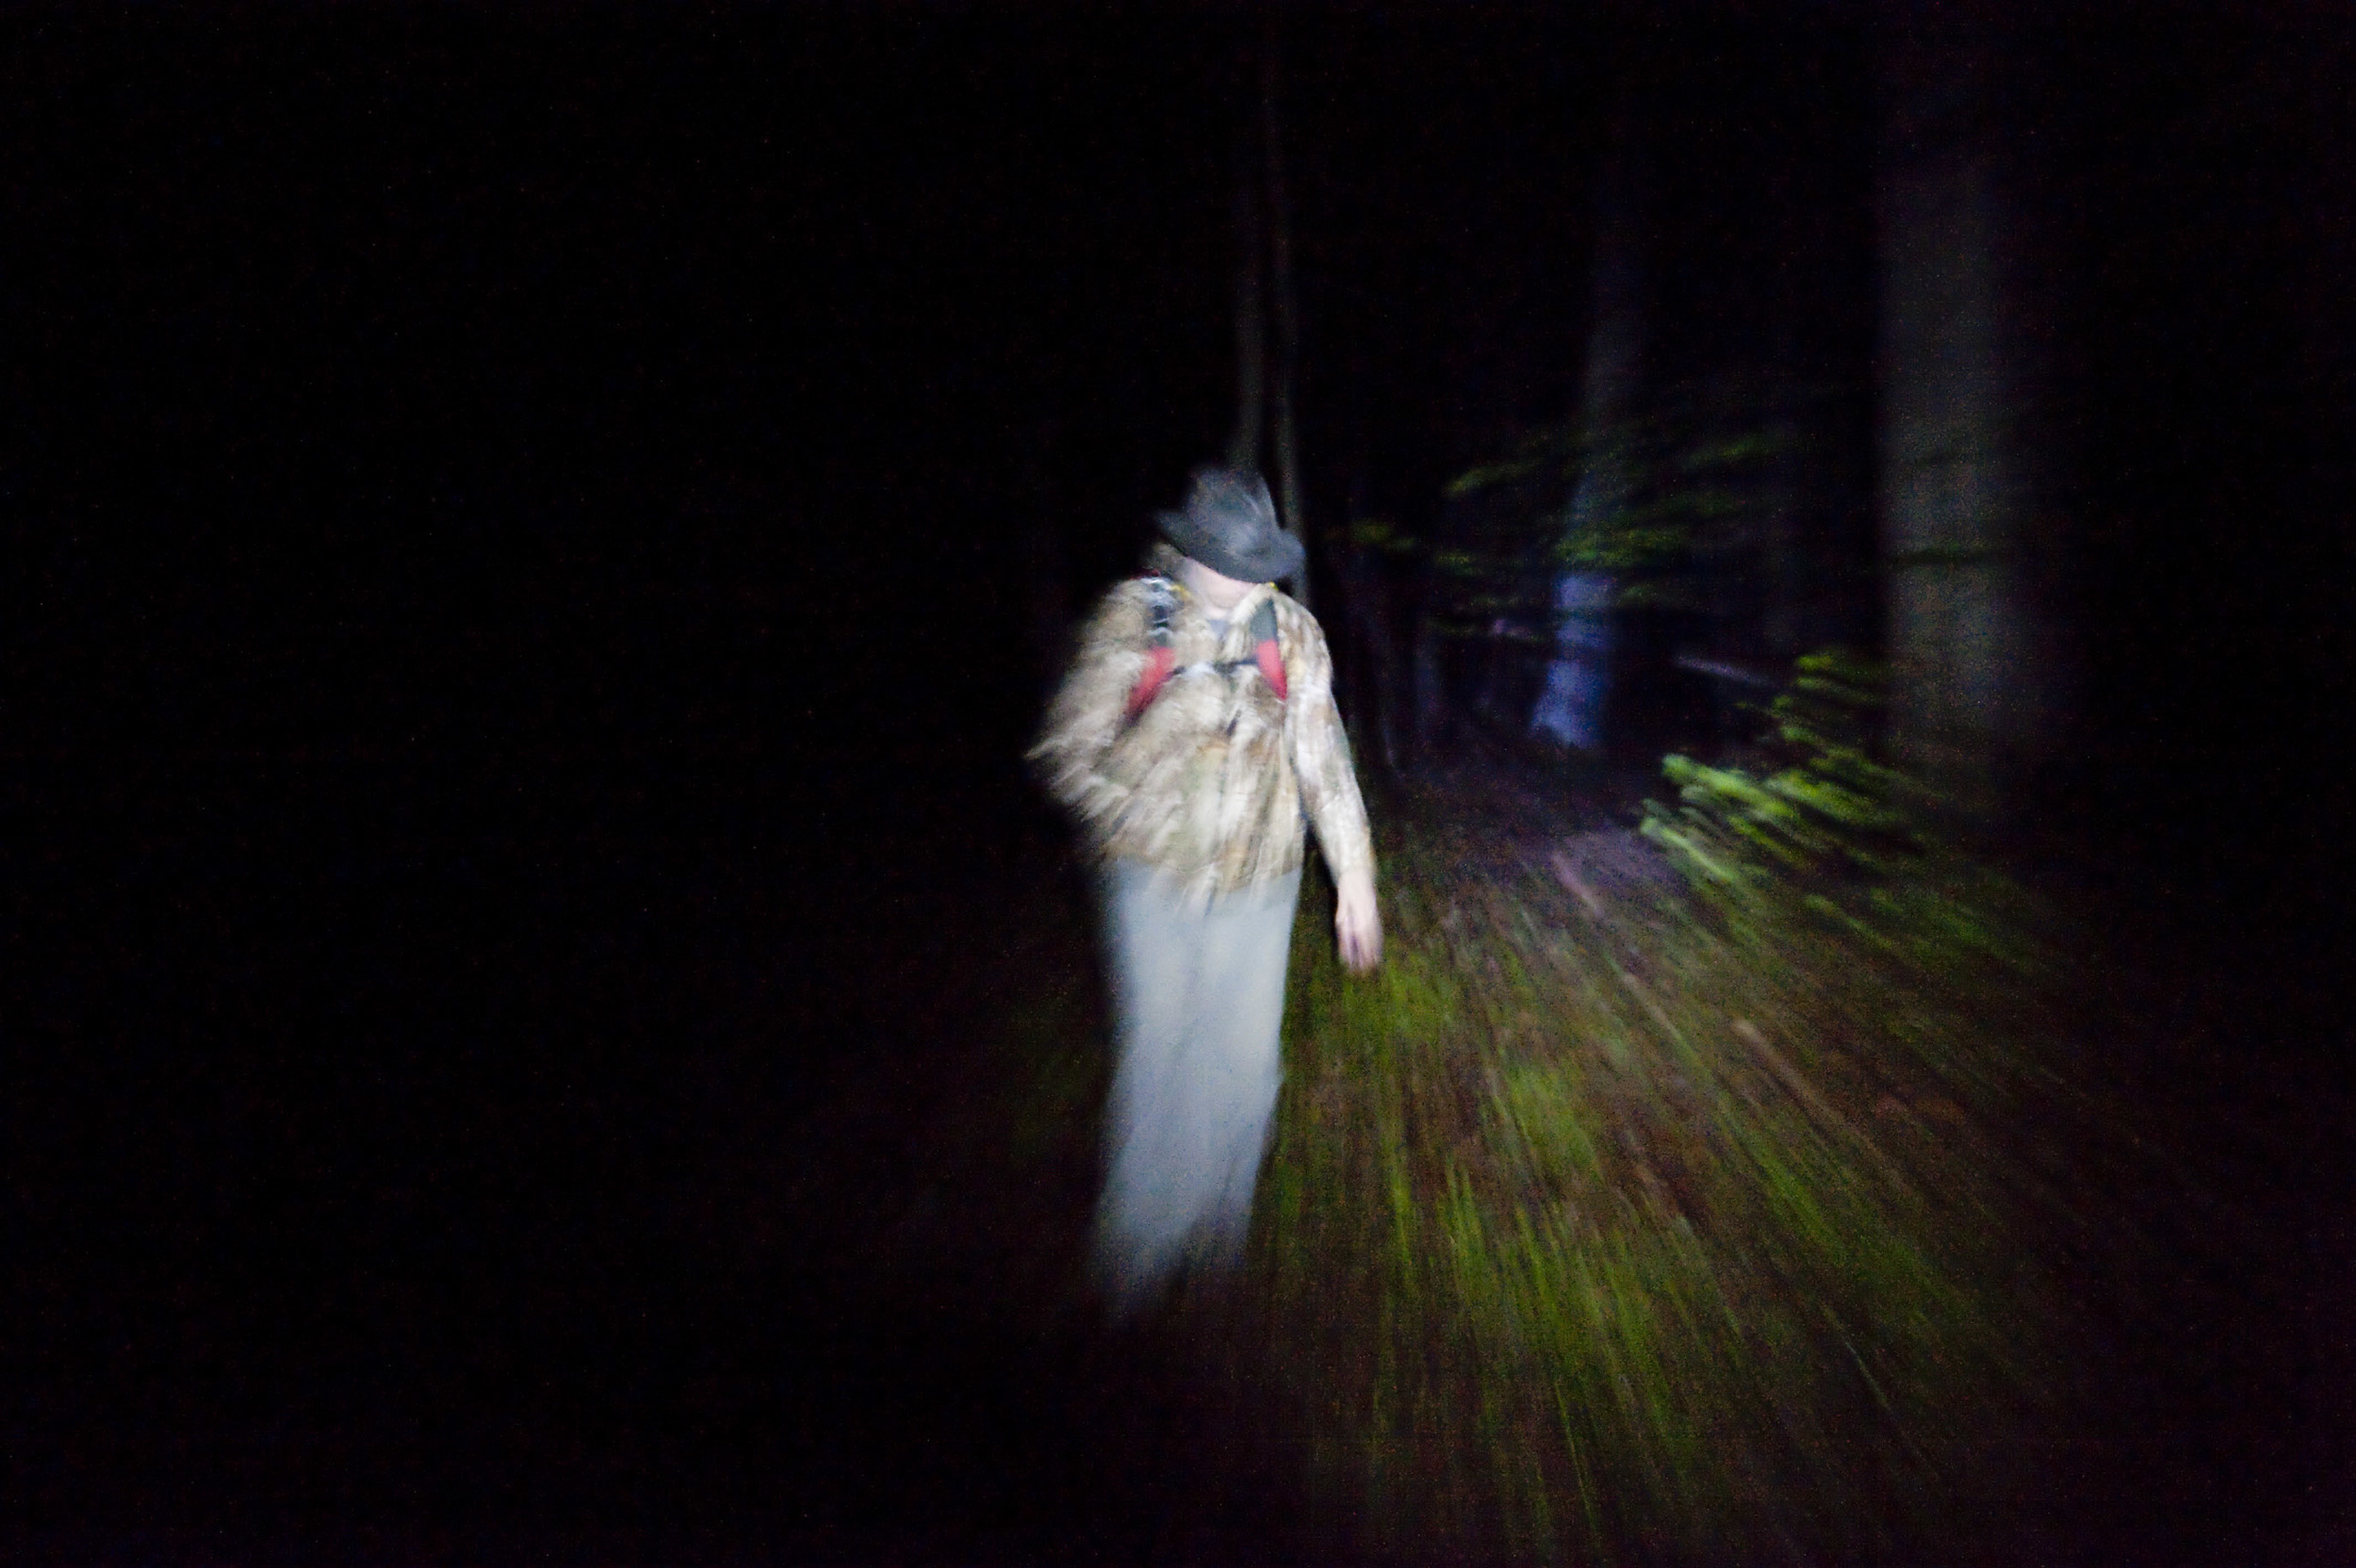 Ohio anomalous researcher and ParaNexus Executive Director Brian Parsons listens to frogs' ceased croaking, which could be a sign of something large in the woods, while on a night research hike during the 2016 Pennsylvania Bigfoot Camping Adventure at Benner's Meadow Run campground near Farmington on Friday, May 6. The Farmington area has been known as a Bigfoot hotbed with numerous encounters reported by campers, hunters and locals.